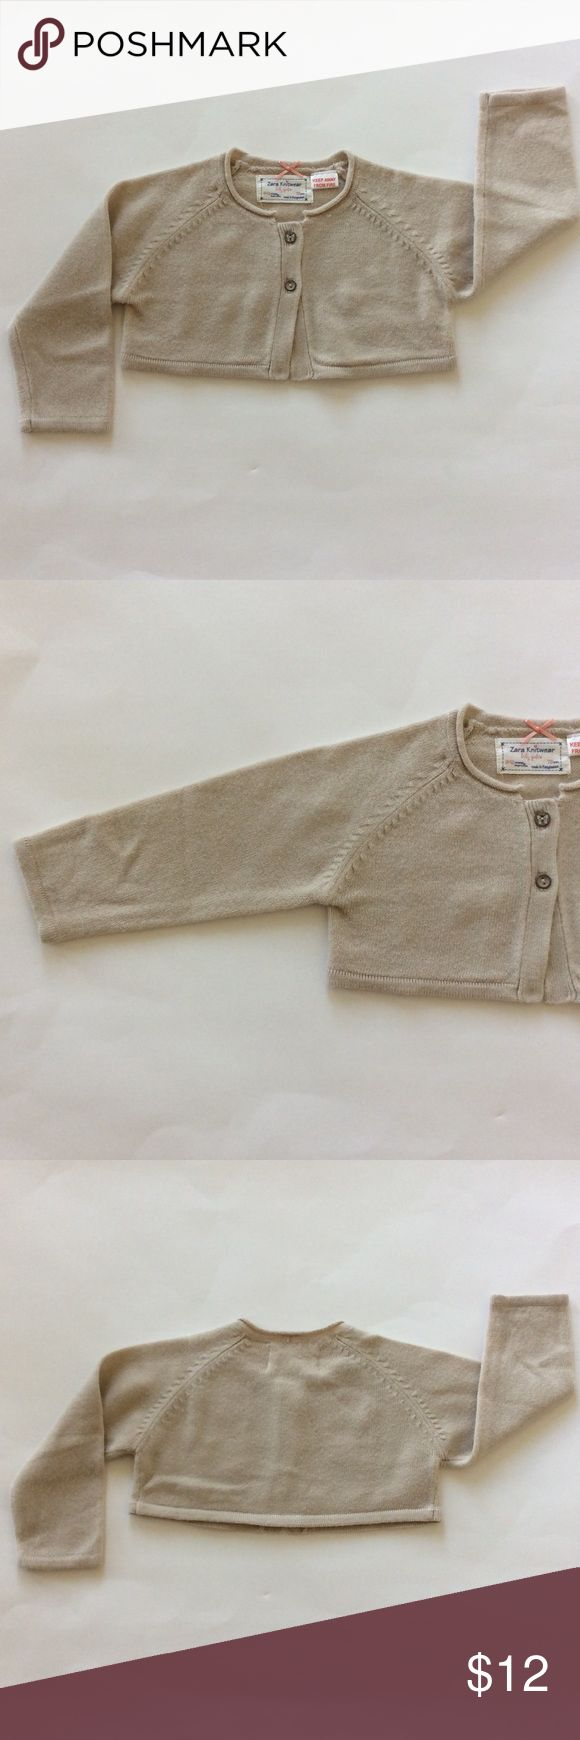 👫Zara Knitwear Baby Girl's cropped cardigan Zara Knitwear Baby Girl's cropped cardigan sweater. Oatmeal color. 2 buttons. Long sleeves. Super soft. Size 9-12 mths. Excellent condition. Zara Shirts & Tops Sweaters